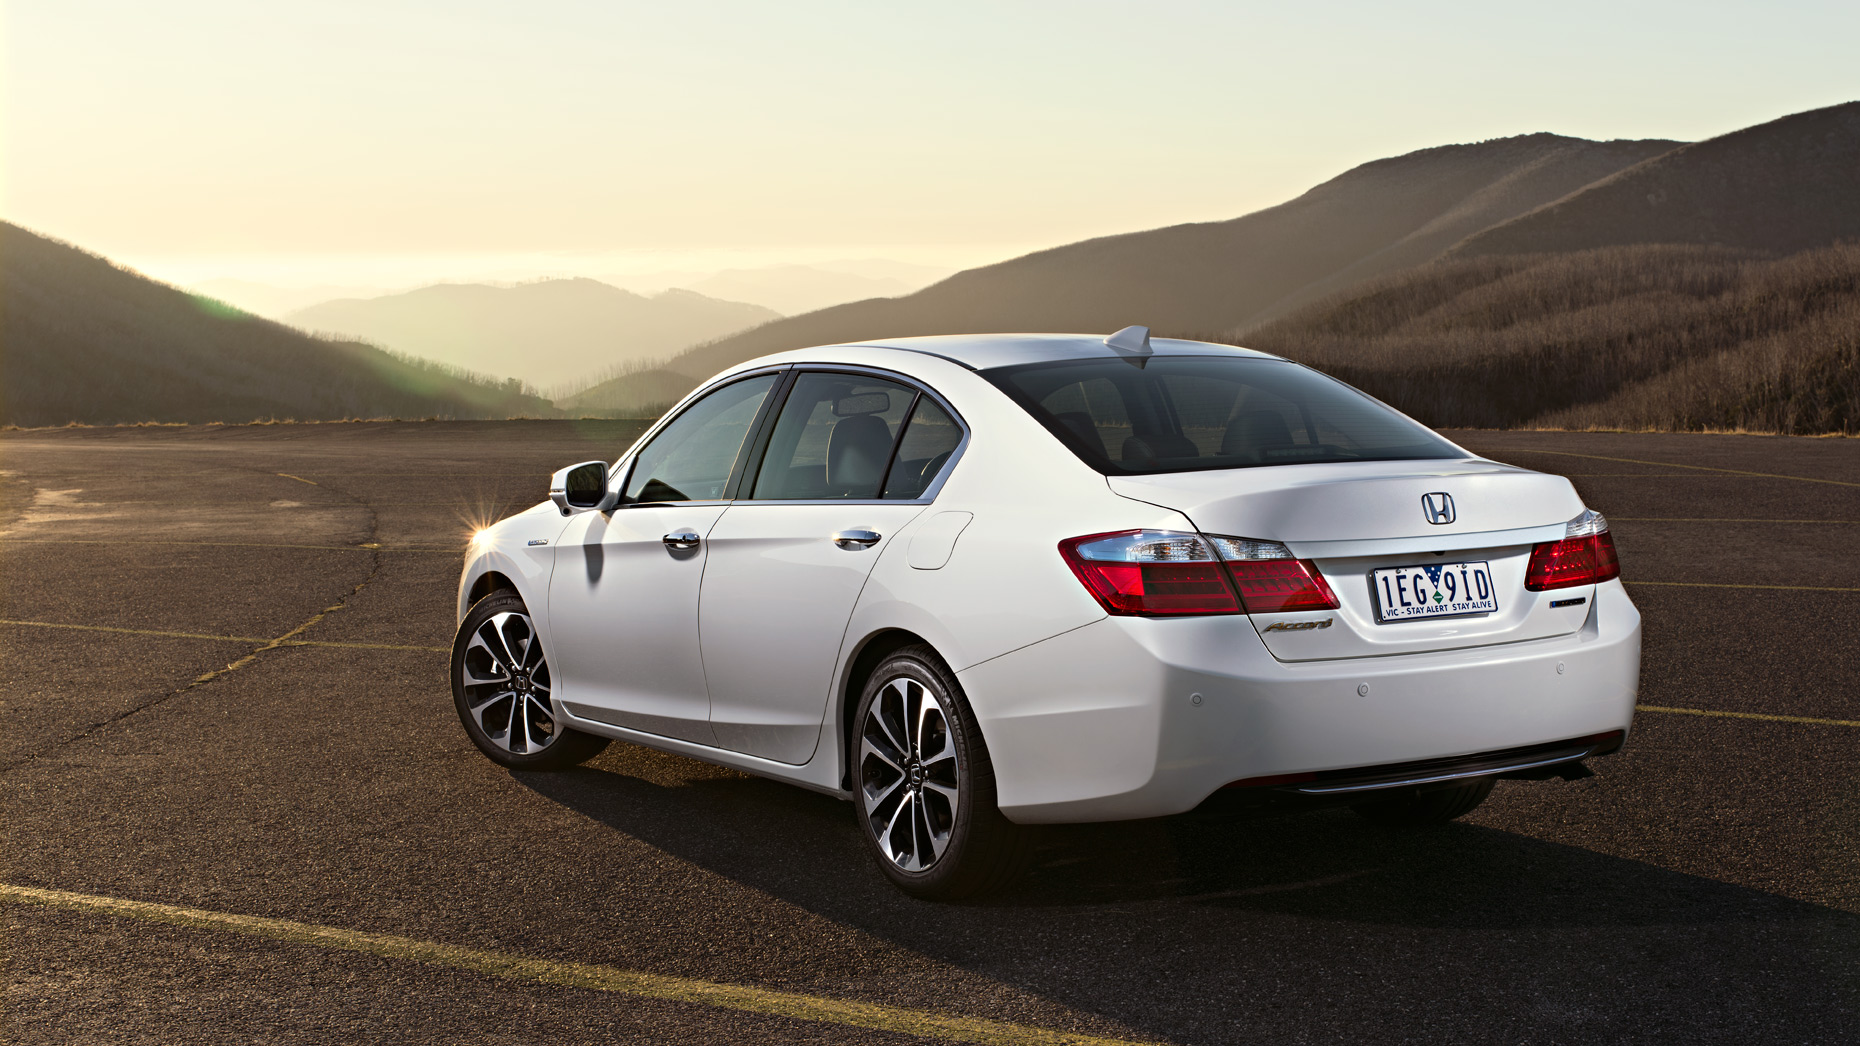 Honda-Accord-Sports-Hybrid_395